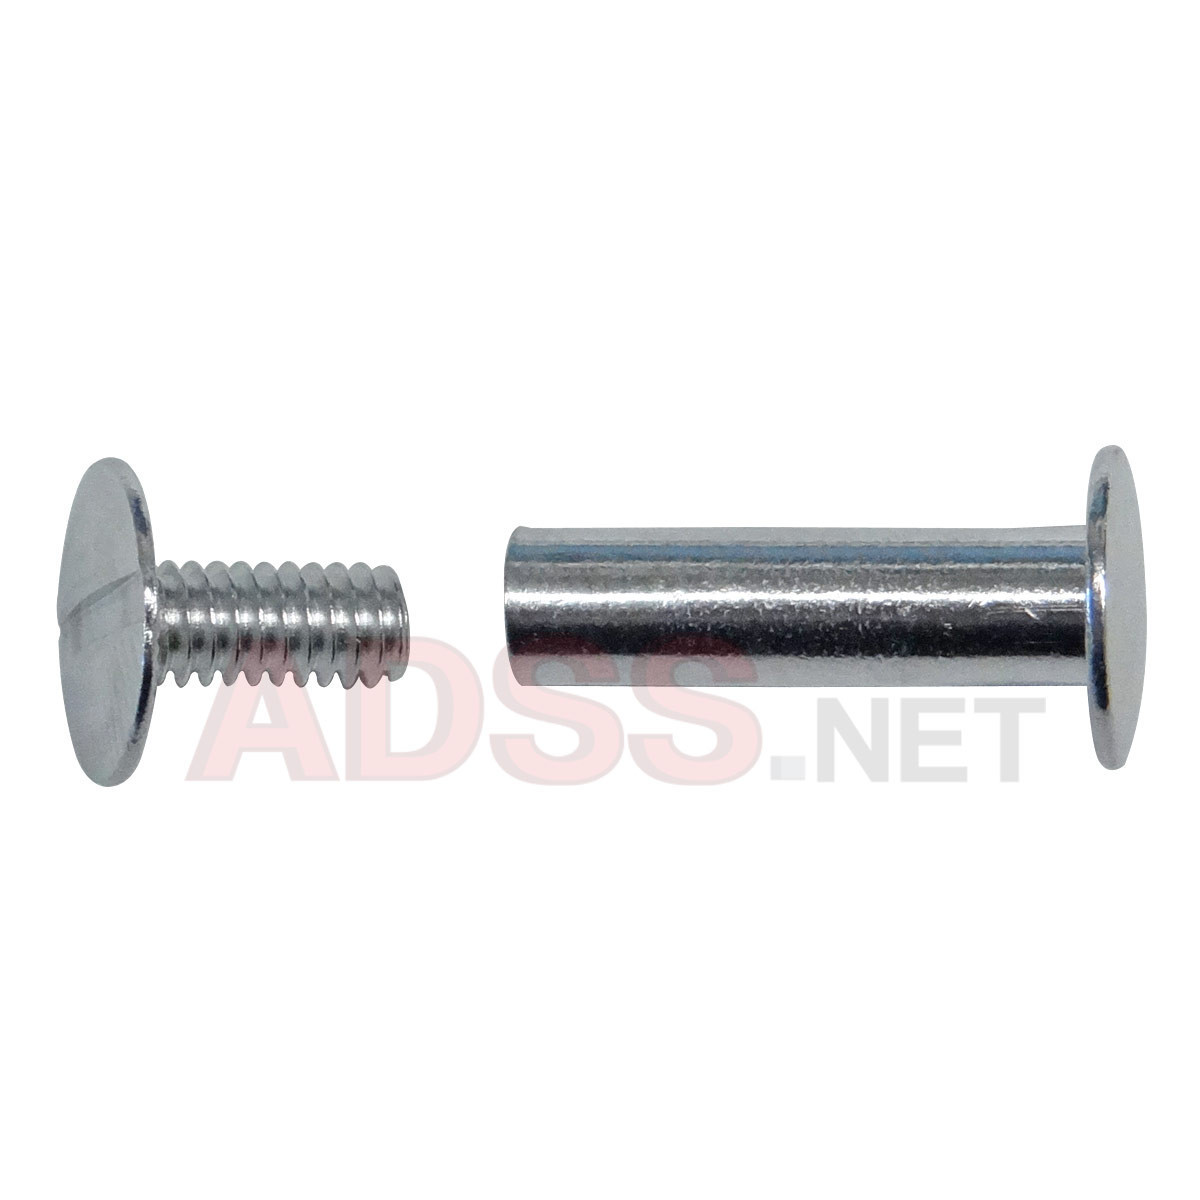 "3/4"" Aluminum Screw Posts <font color=177ddd><b>(100 Sets)</b></font>"